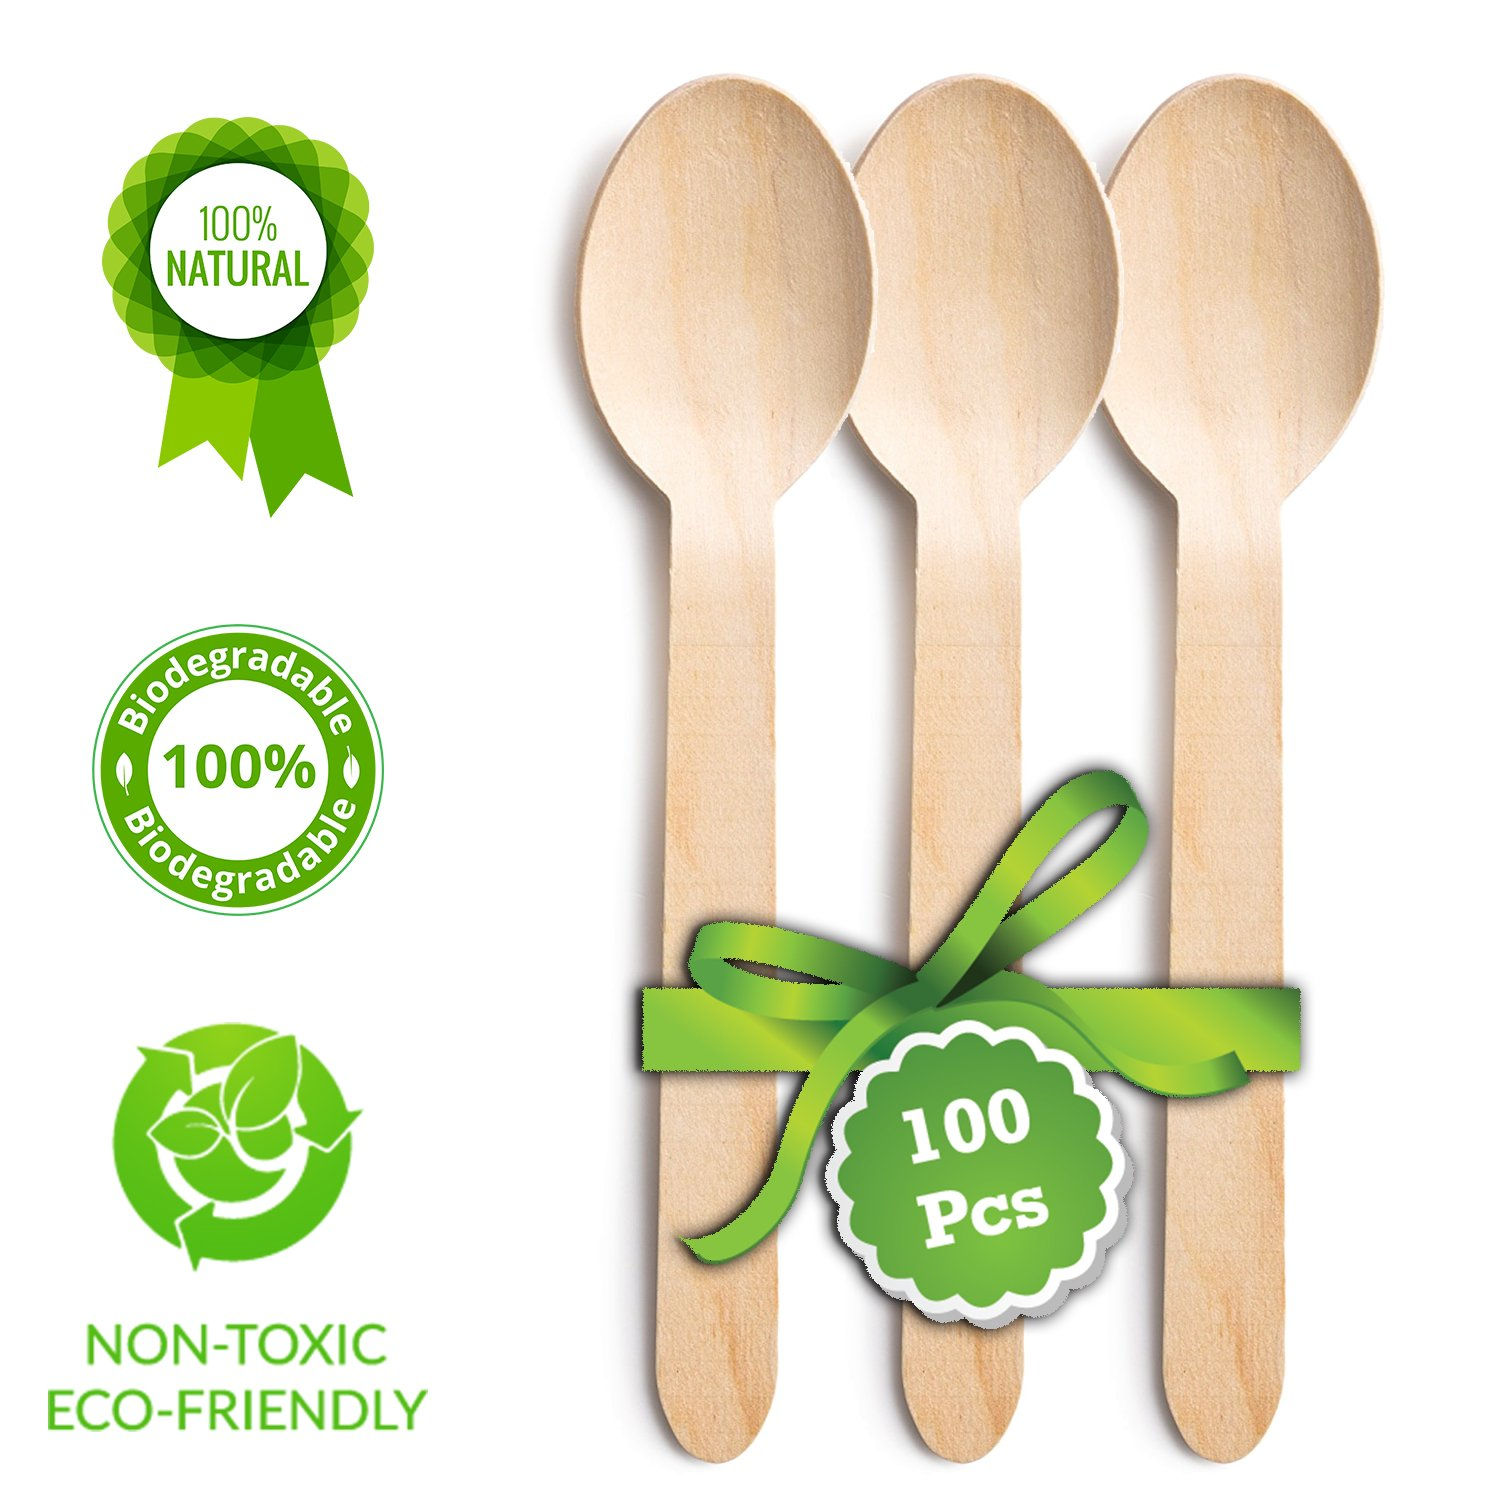 """Disposable Wooden Spoons   Pack of 100 Pcs - 6.5"""" Wooden Spoons  100% Natural Birchawood, Biodegradable, Eco-Friendly and Compostable Perfect Party Supplies, Camping BBQ  Good for Healthy  SAVE EARTH"""